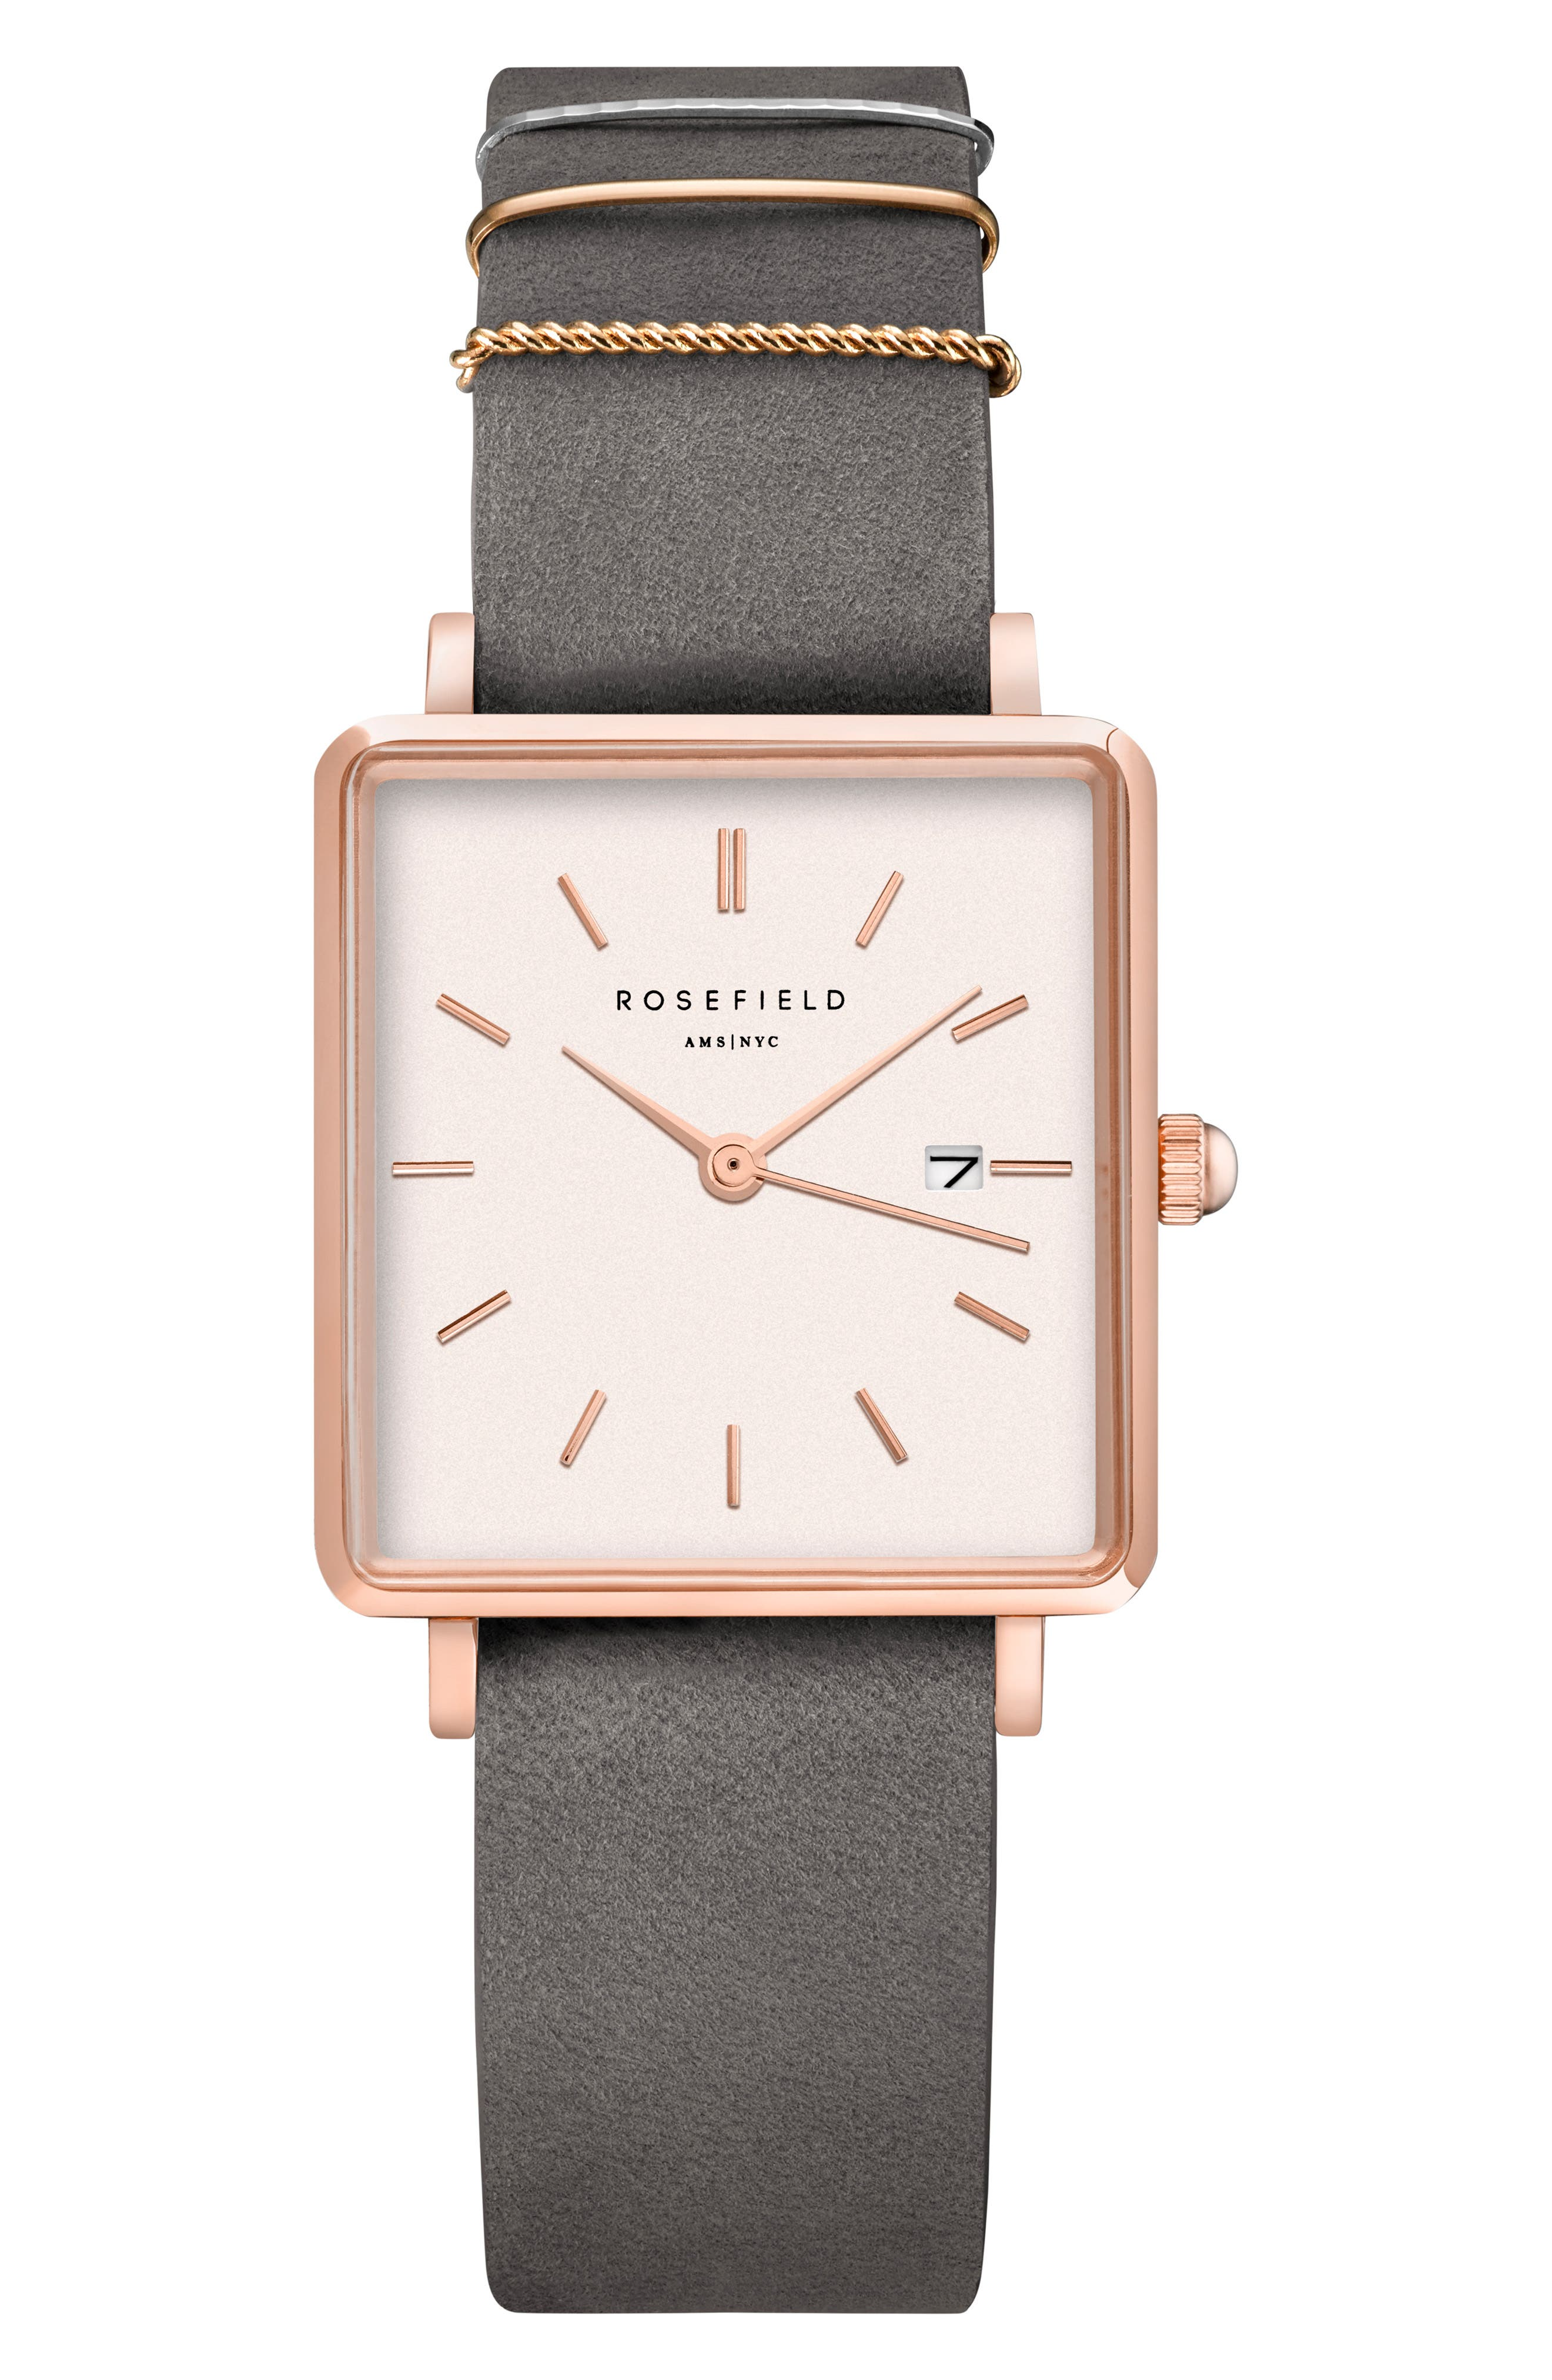 ROSEFIELD,                             The Boxy Leather Strap Watch, 26mm x 28mm,                             Main thumbnail 1, color,                             GREY/ WHITE/ ROSE GOLD